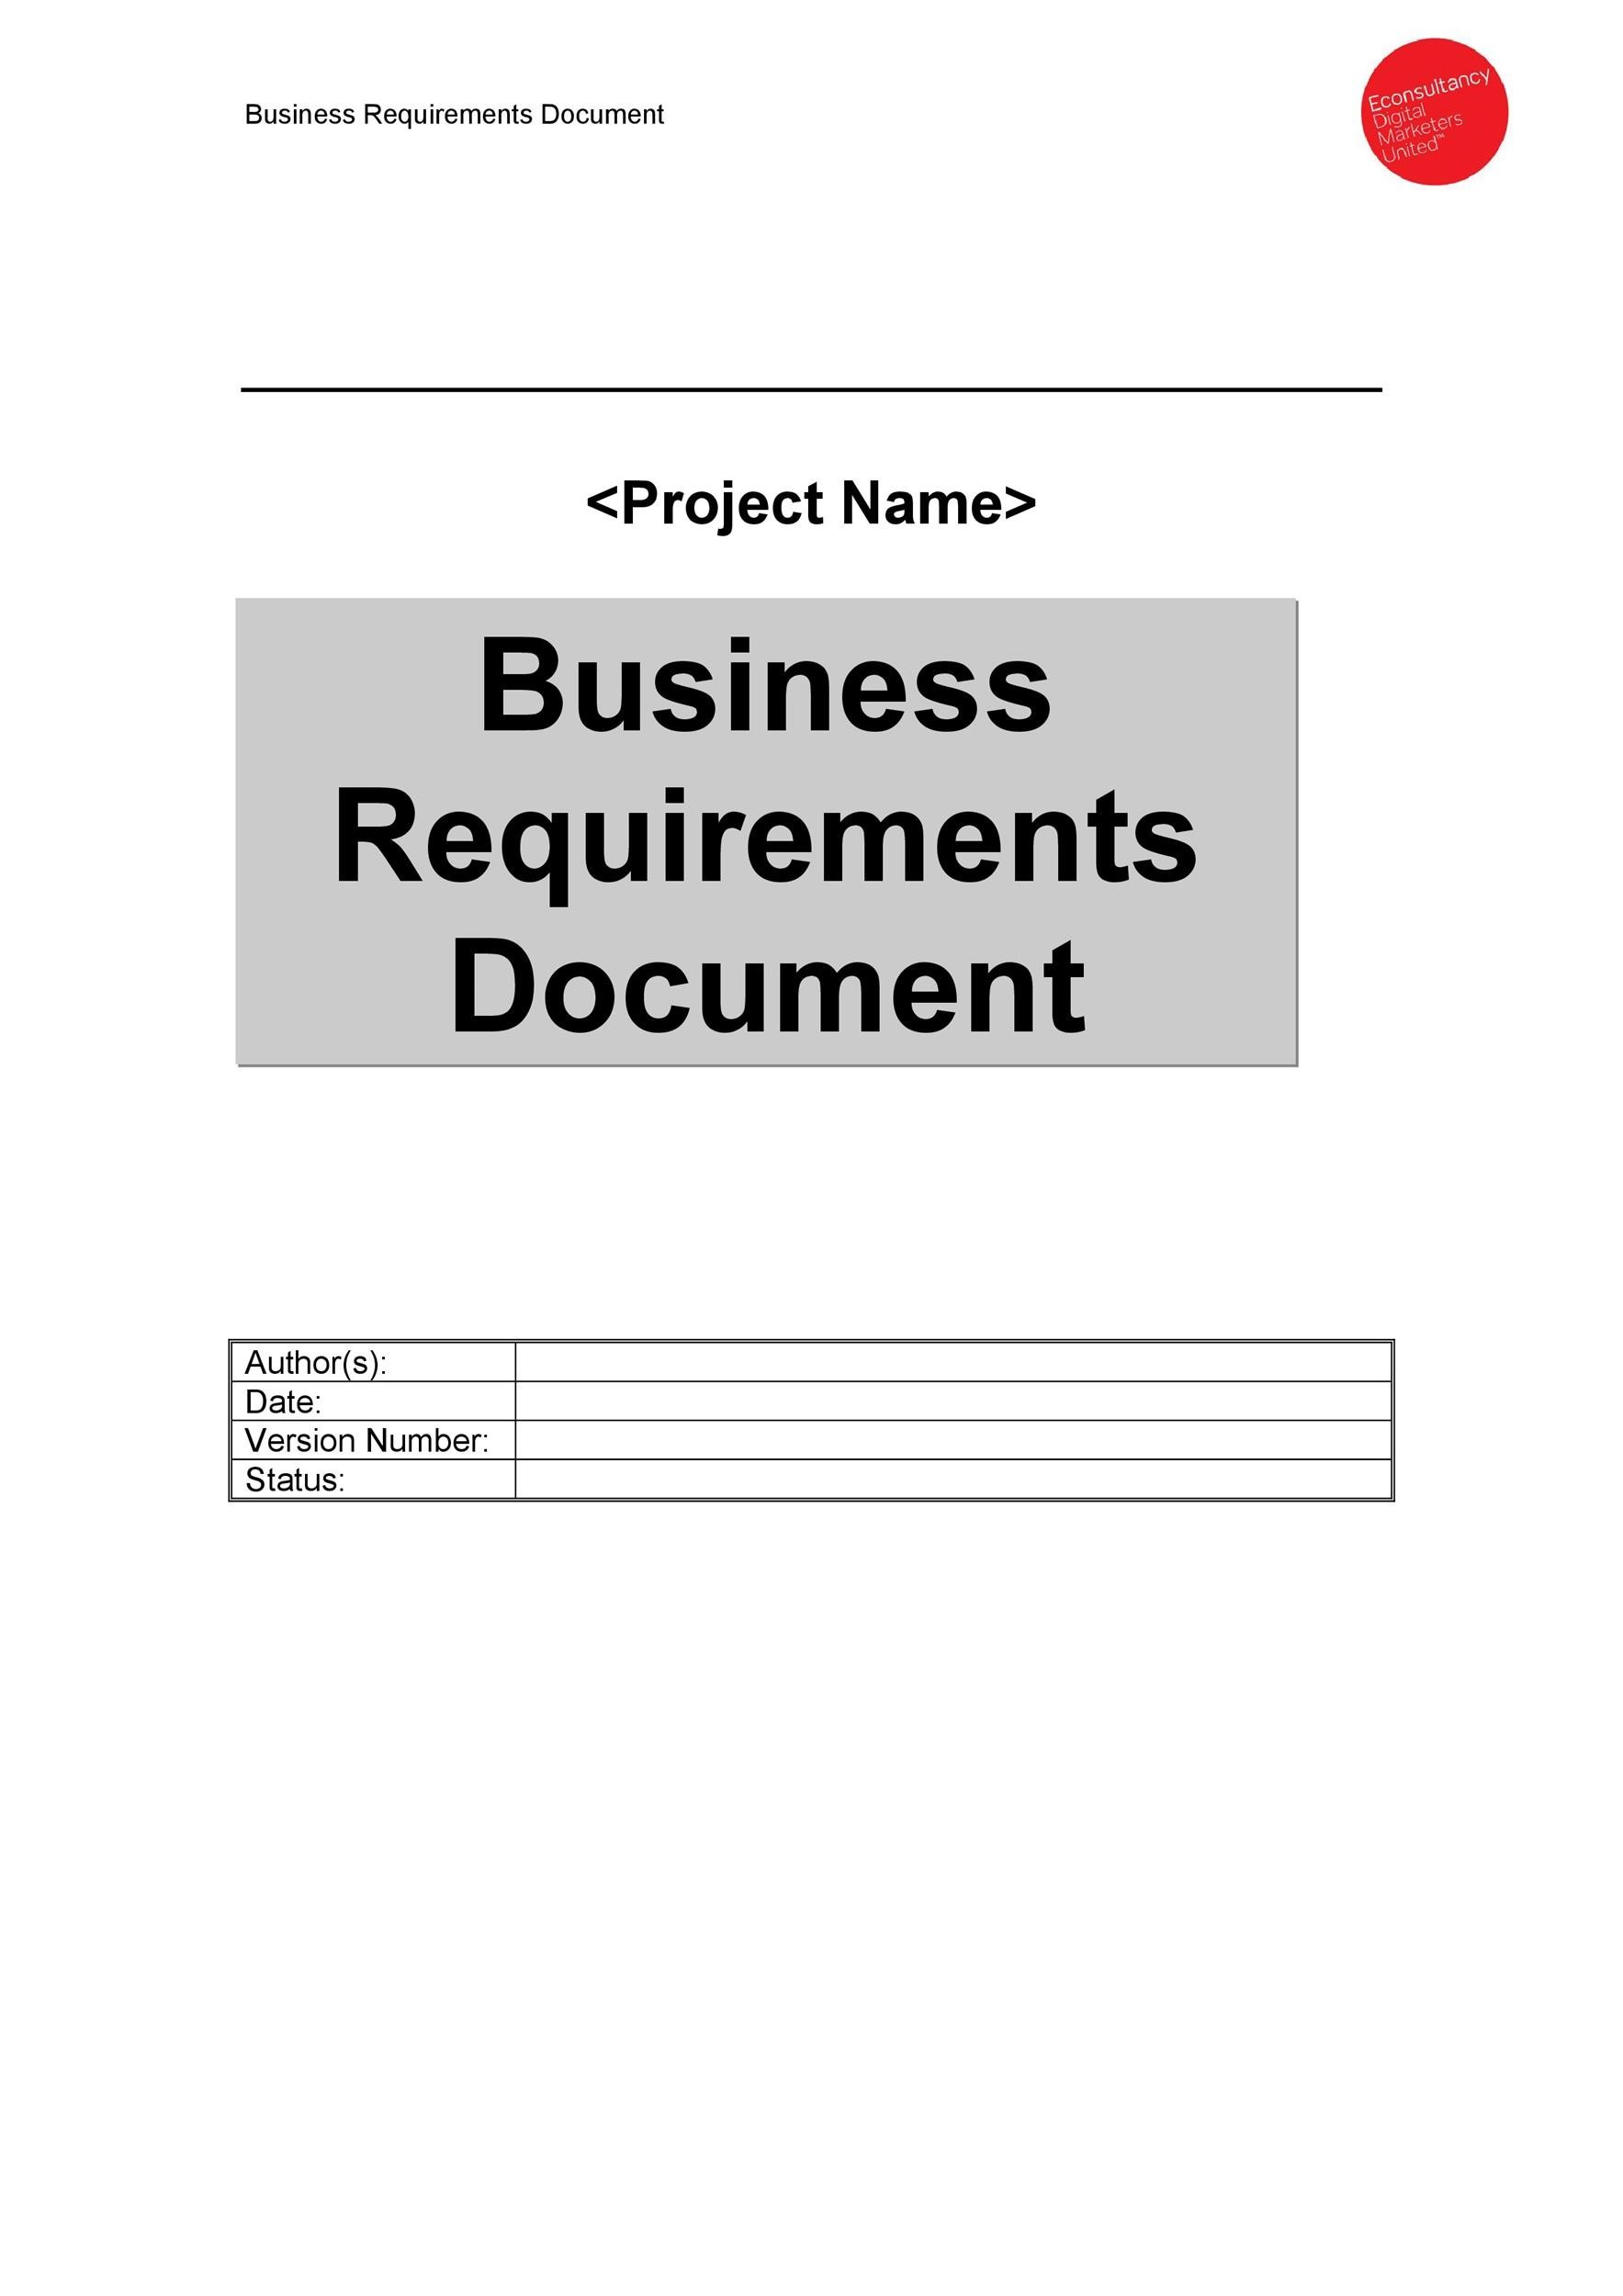 40 simple business requirements document templates template lab free business requirements document template 19 accmission